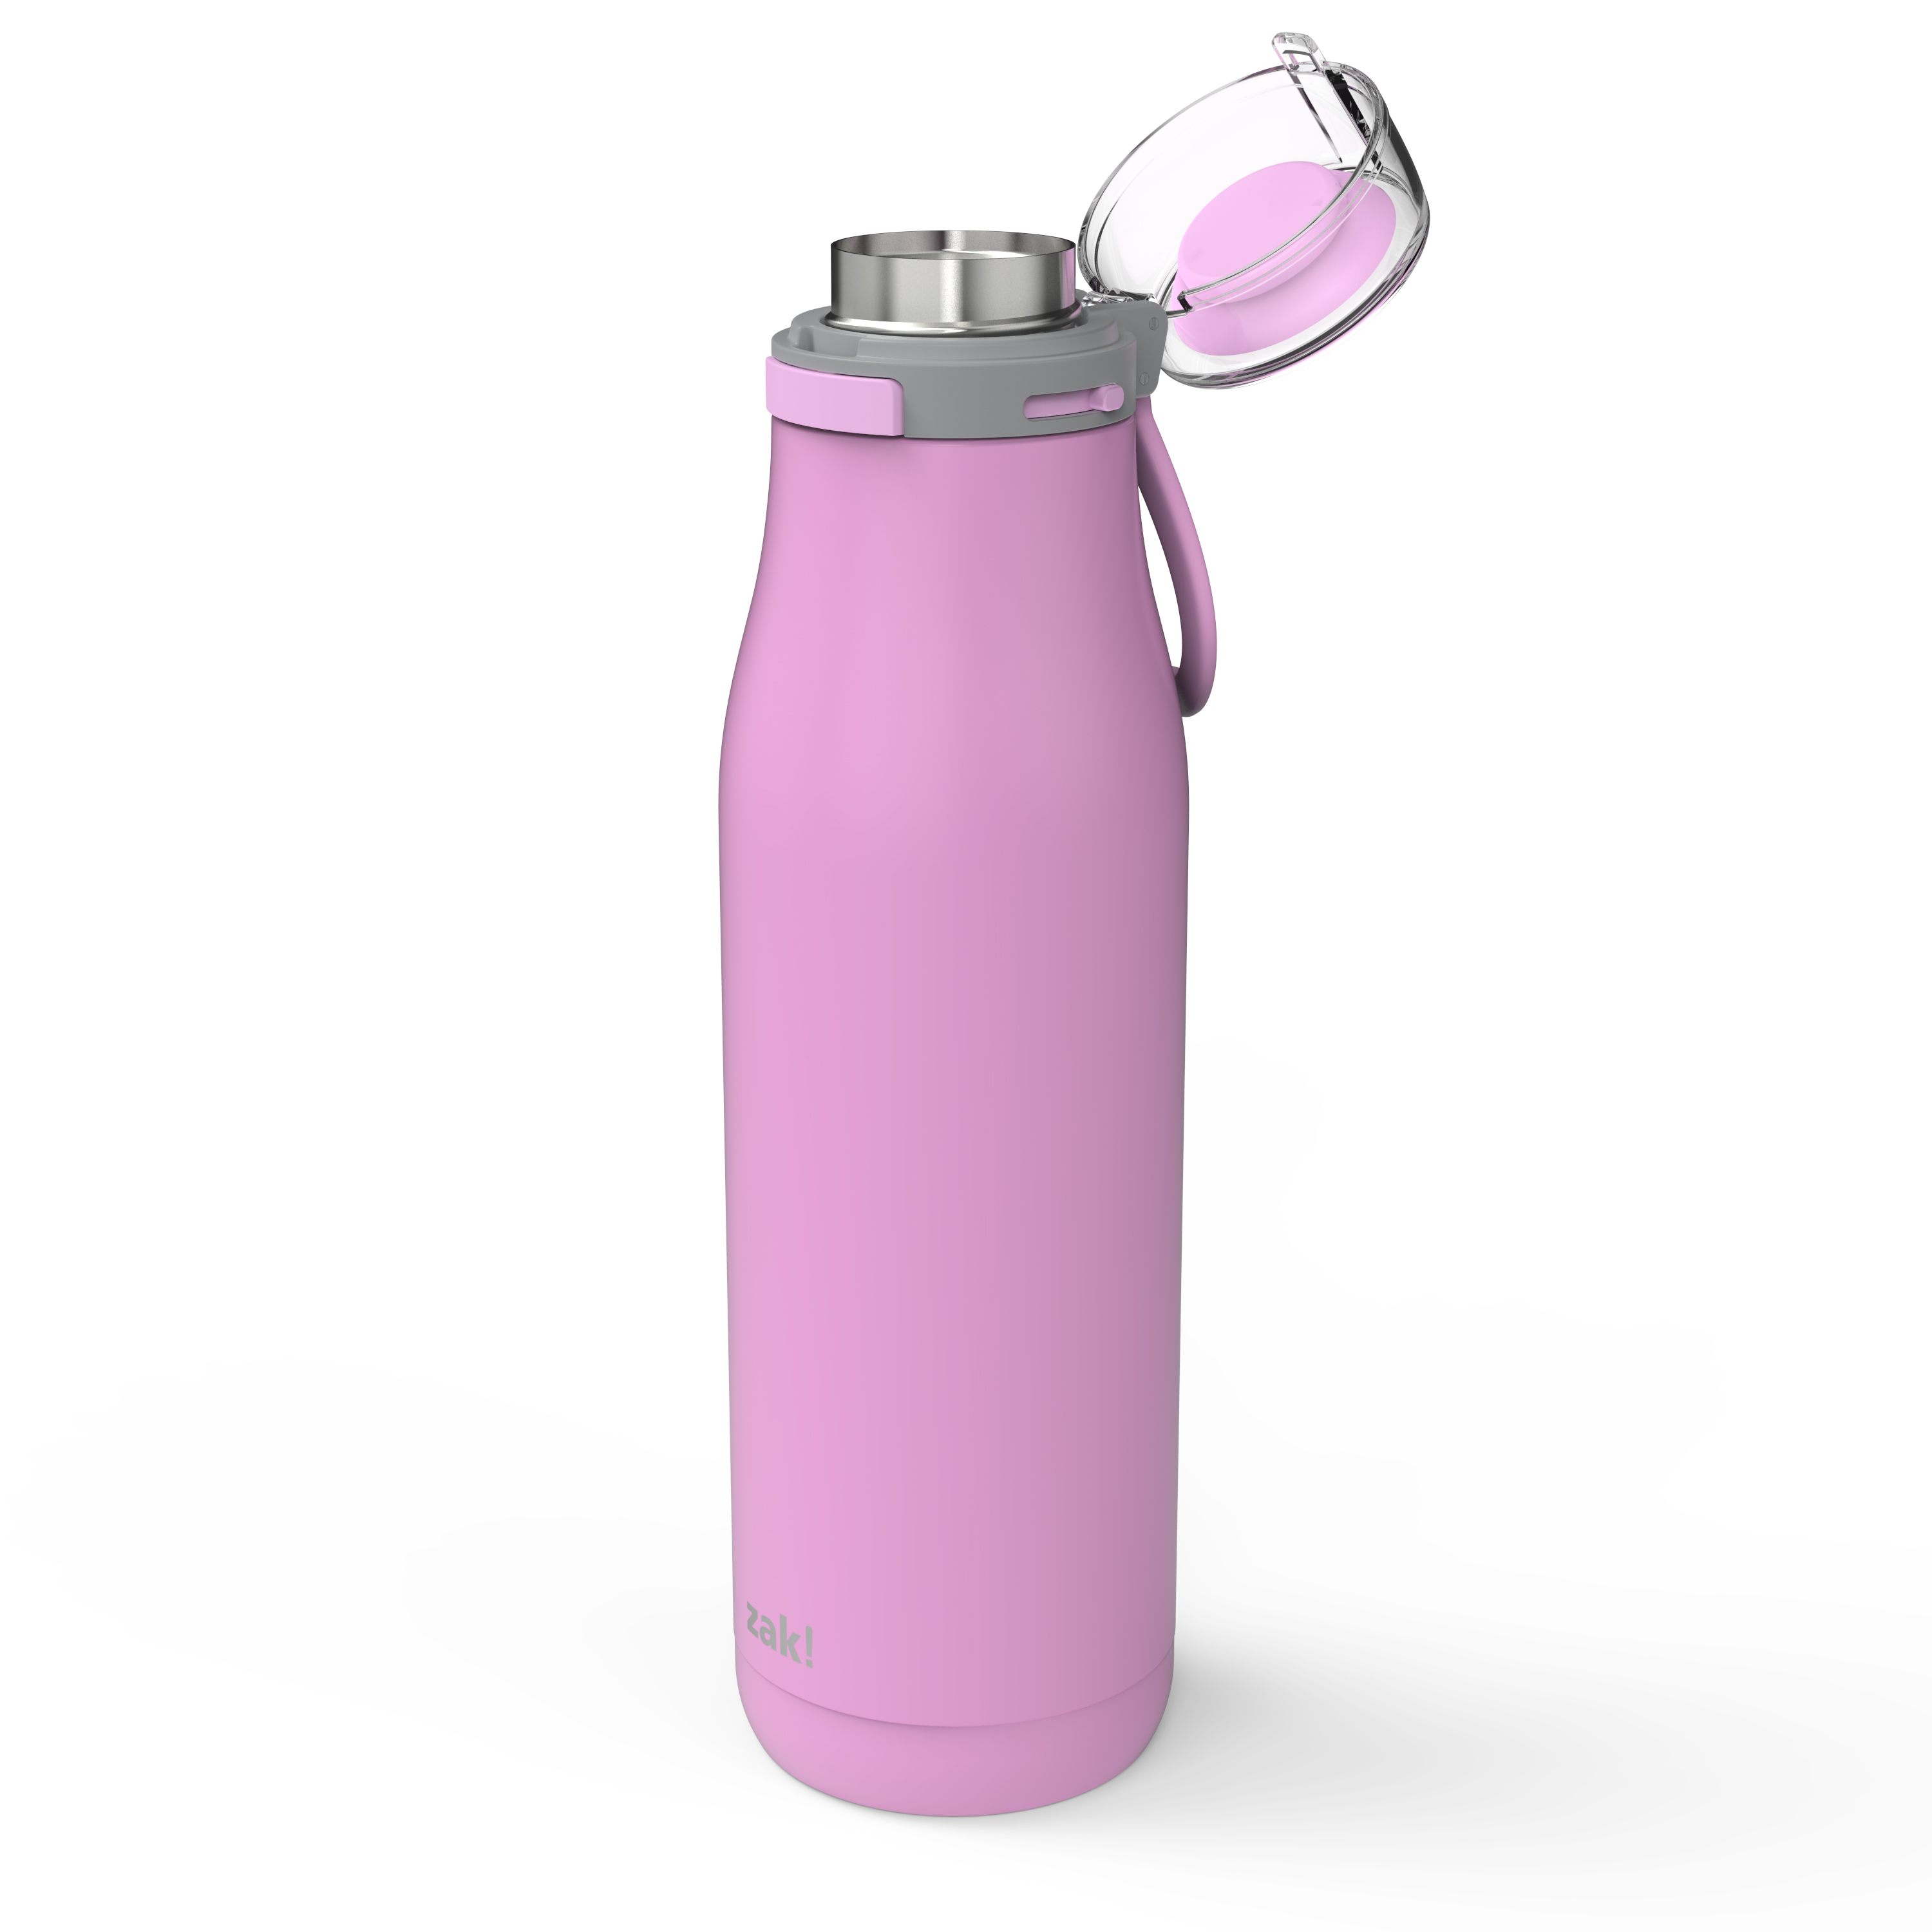 Kiona 29 ounce Vacuum Insulated Stainless Steel Tumbler, Lilac slideshow image 5